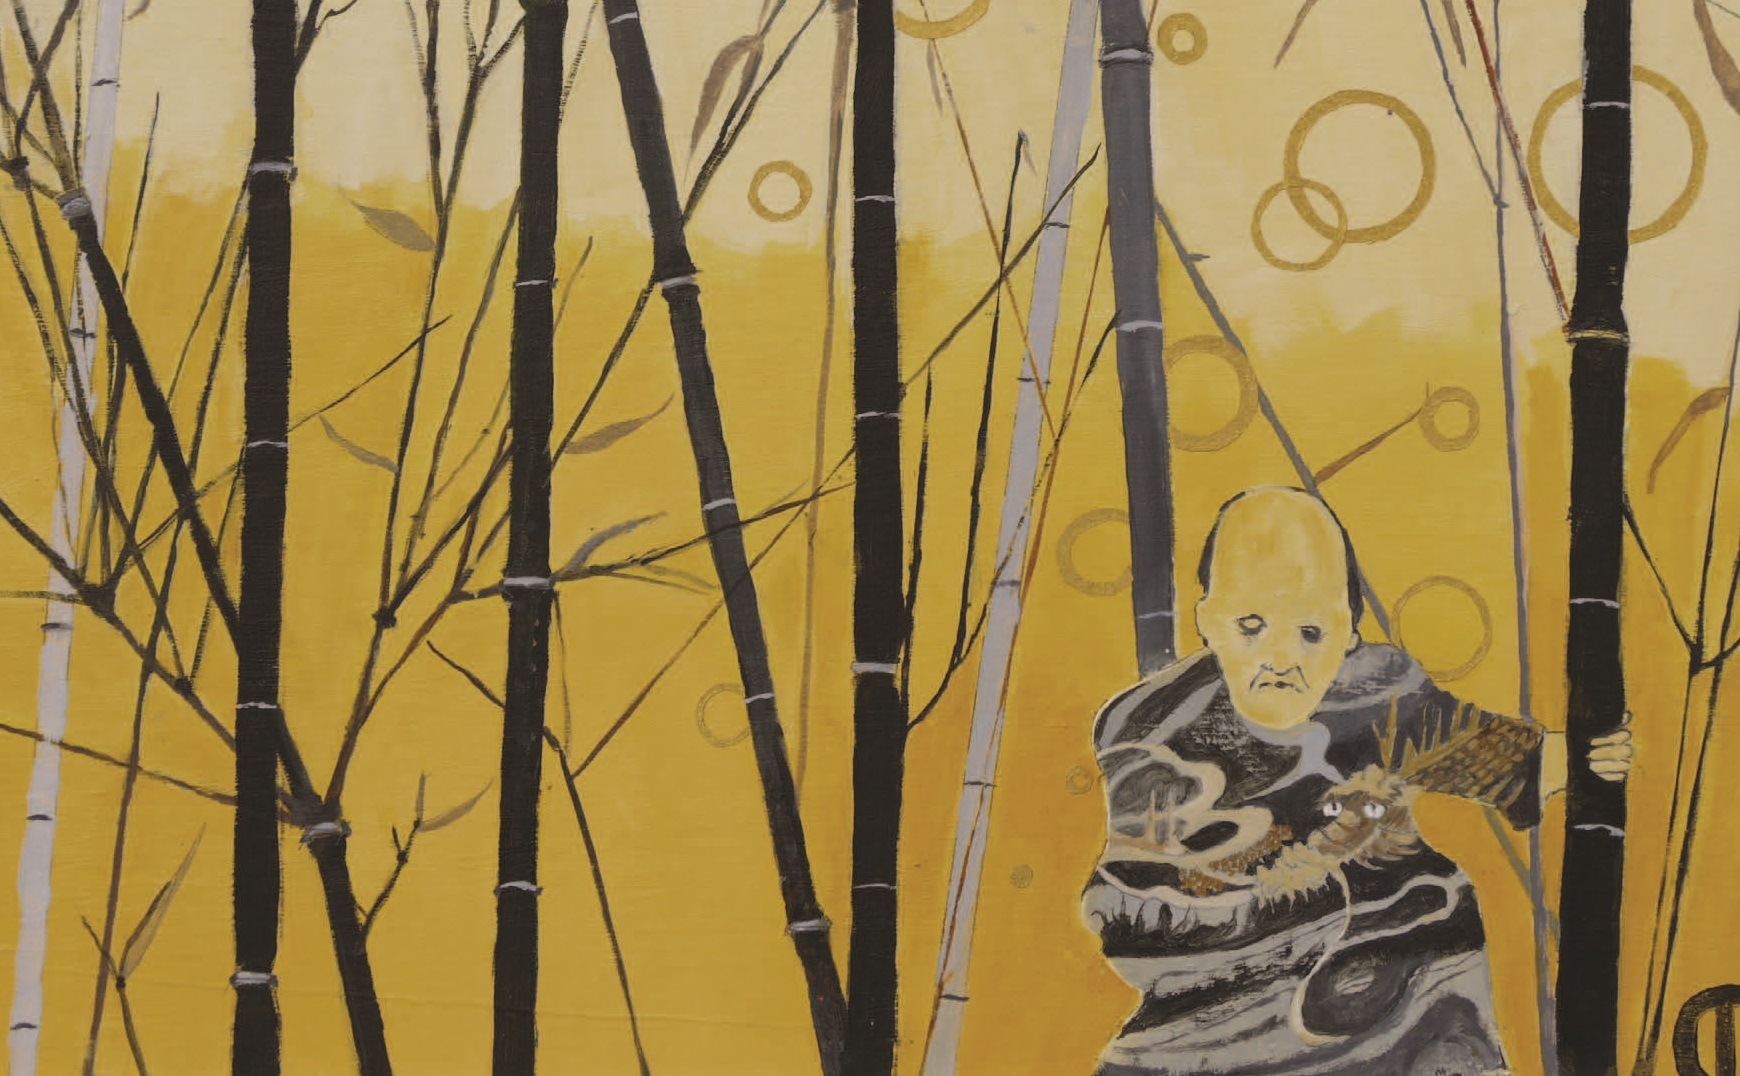 Painting of a man standing amongst bamboo canes looking sad